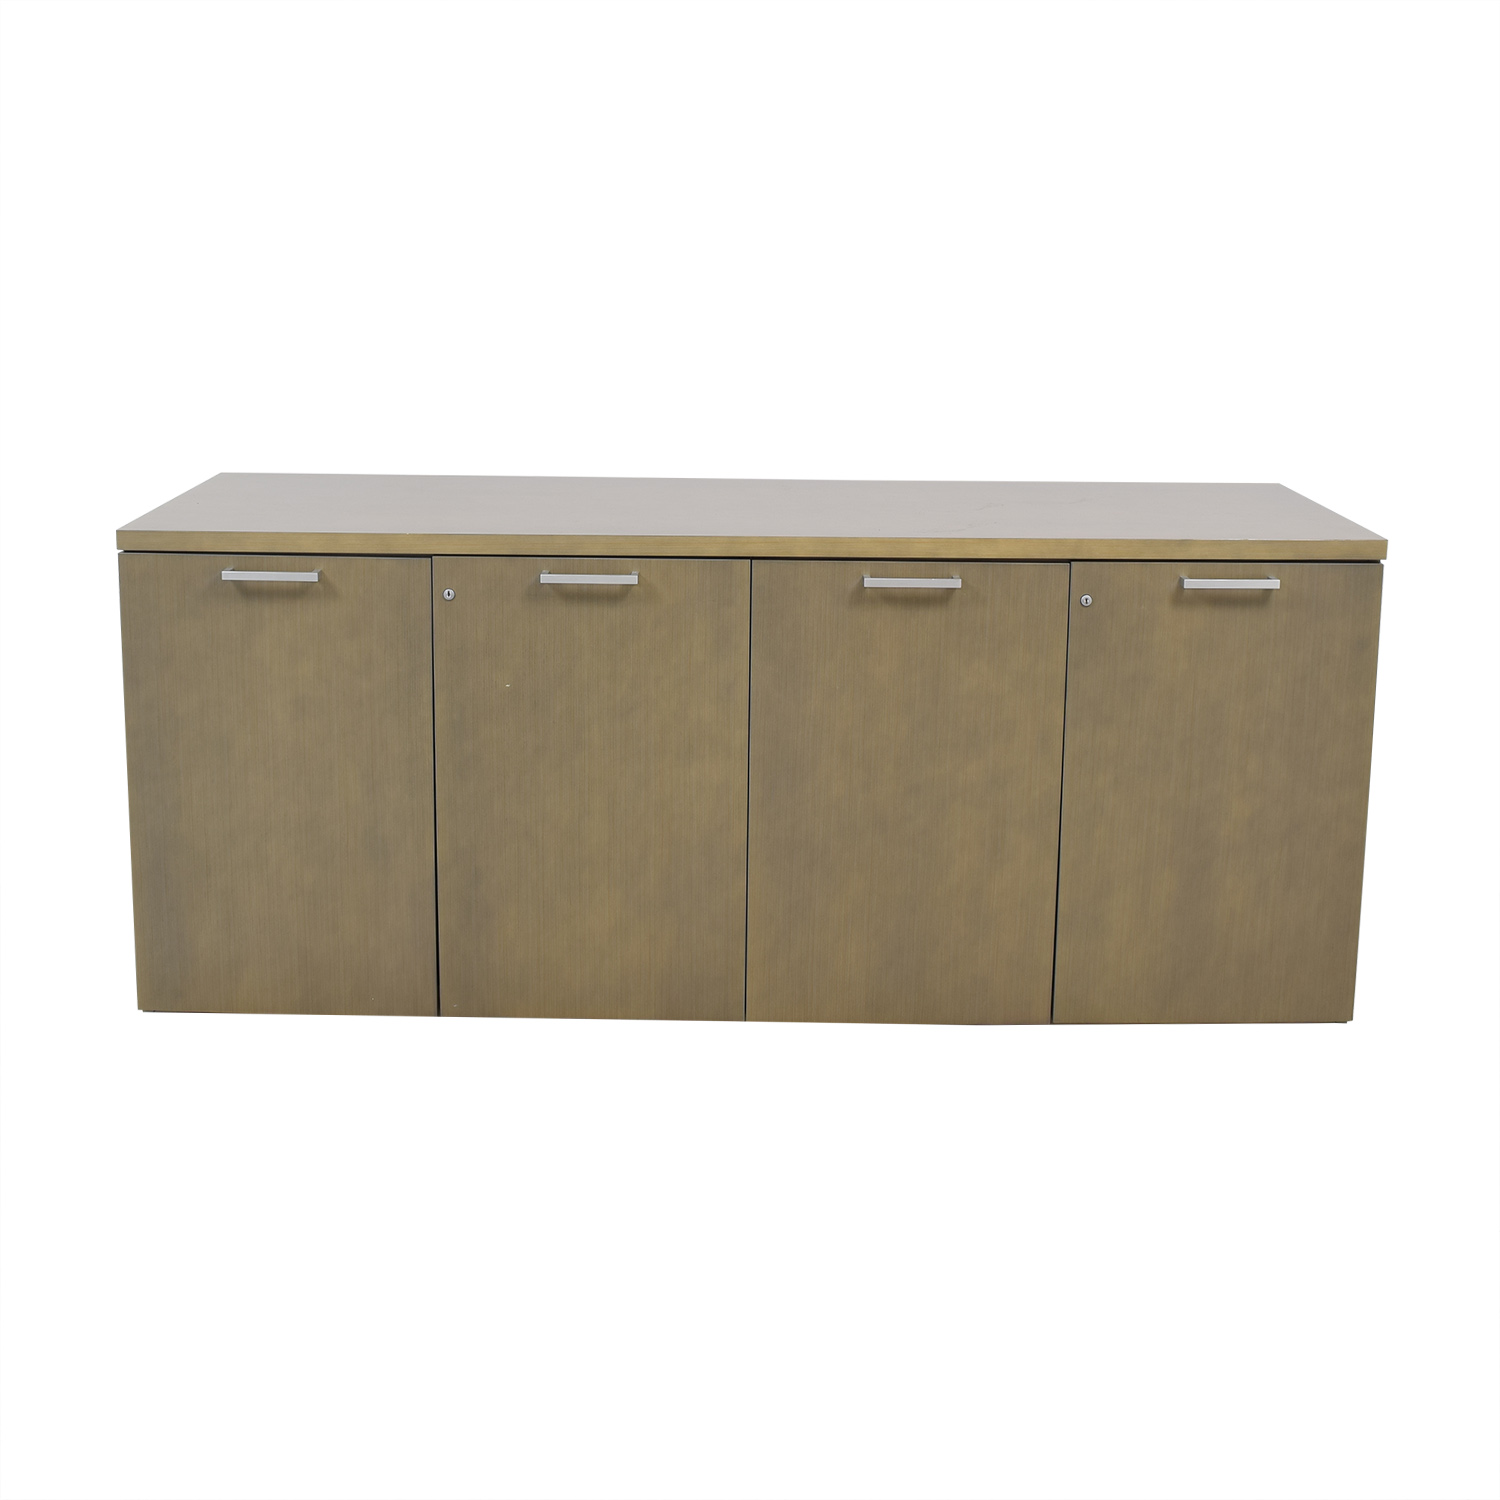 Office Furniture Heaven Storage Credenza / Cabinets & Sideboards